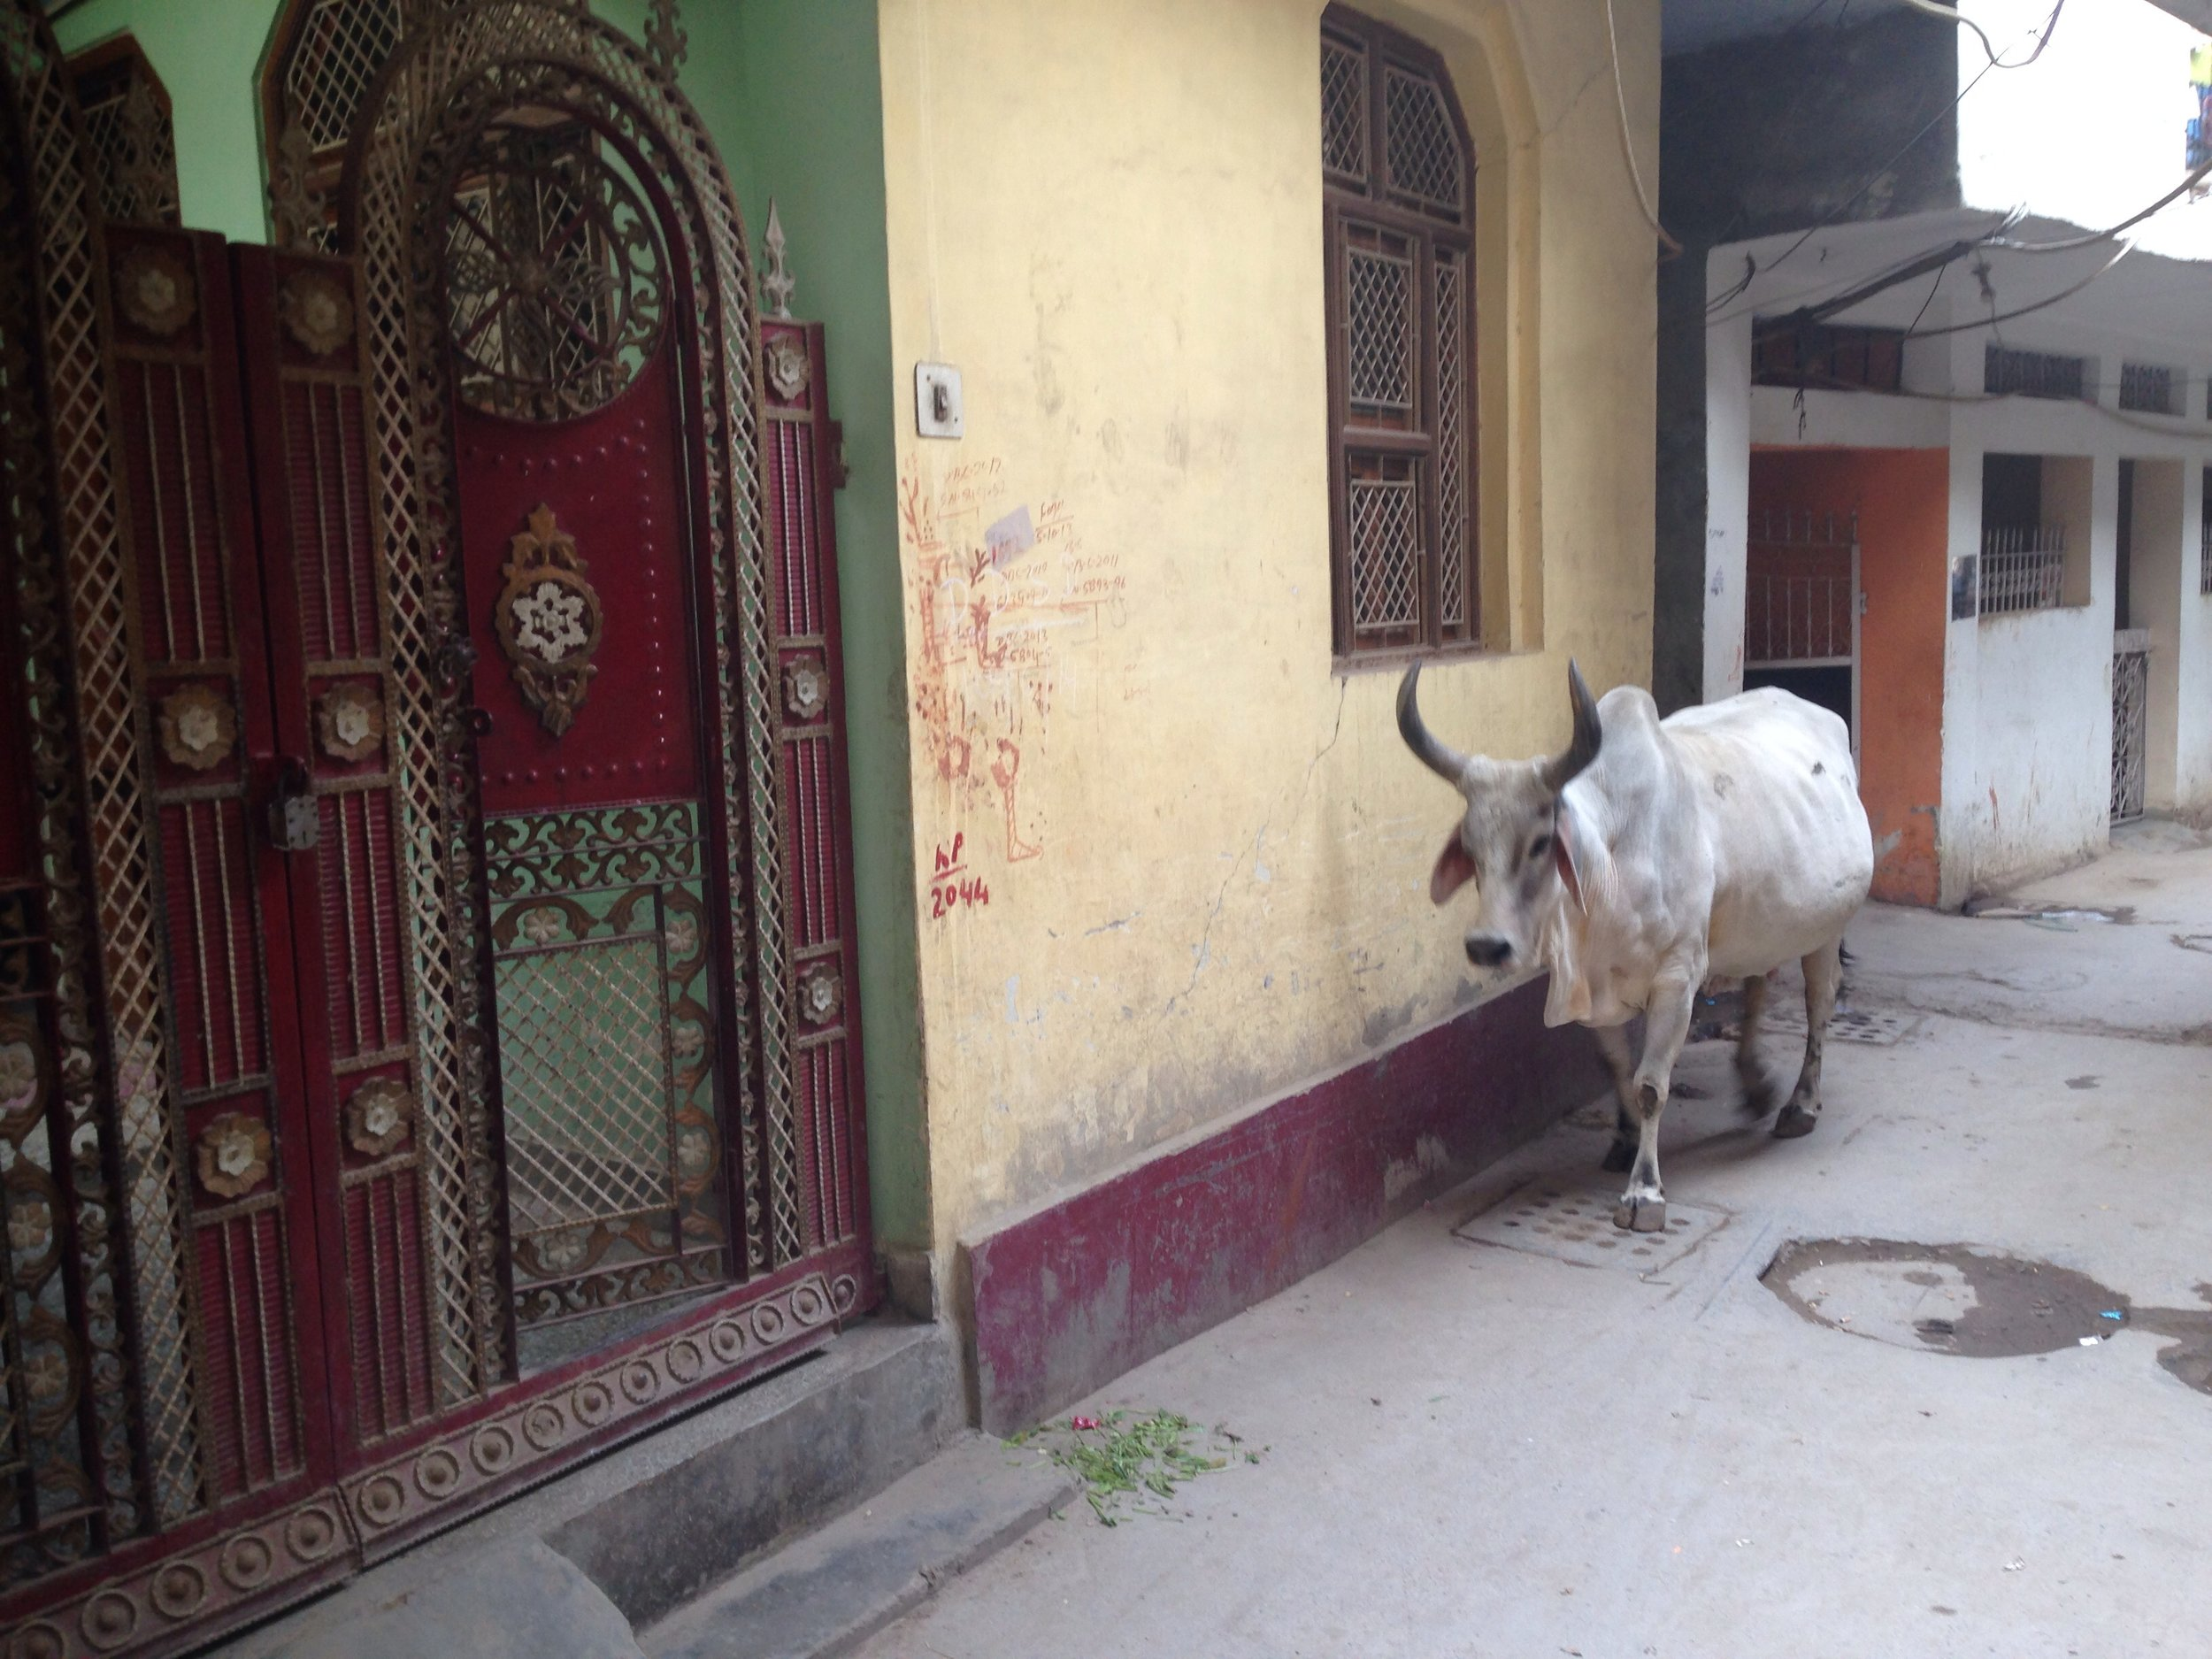 New Delhi. Yes there are cows everywhere